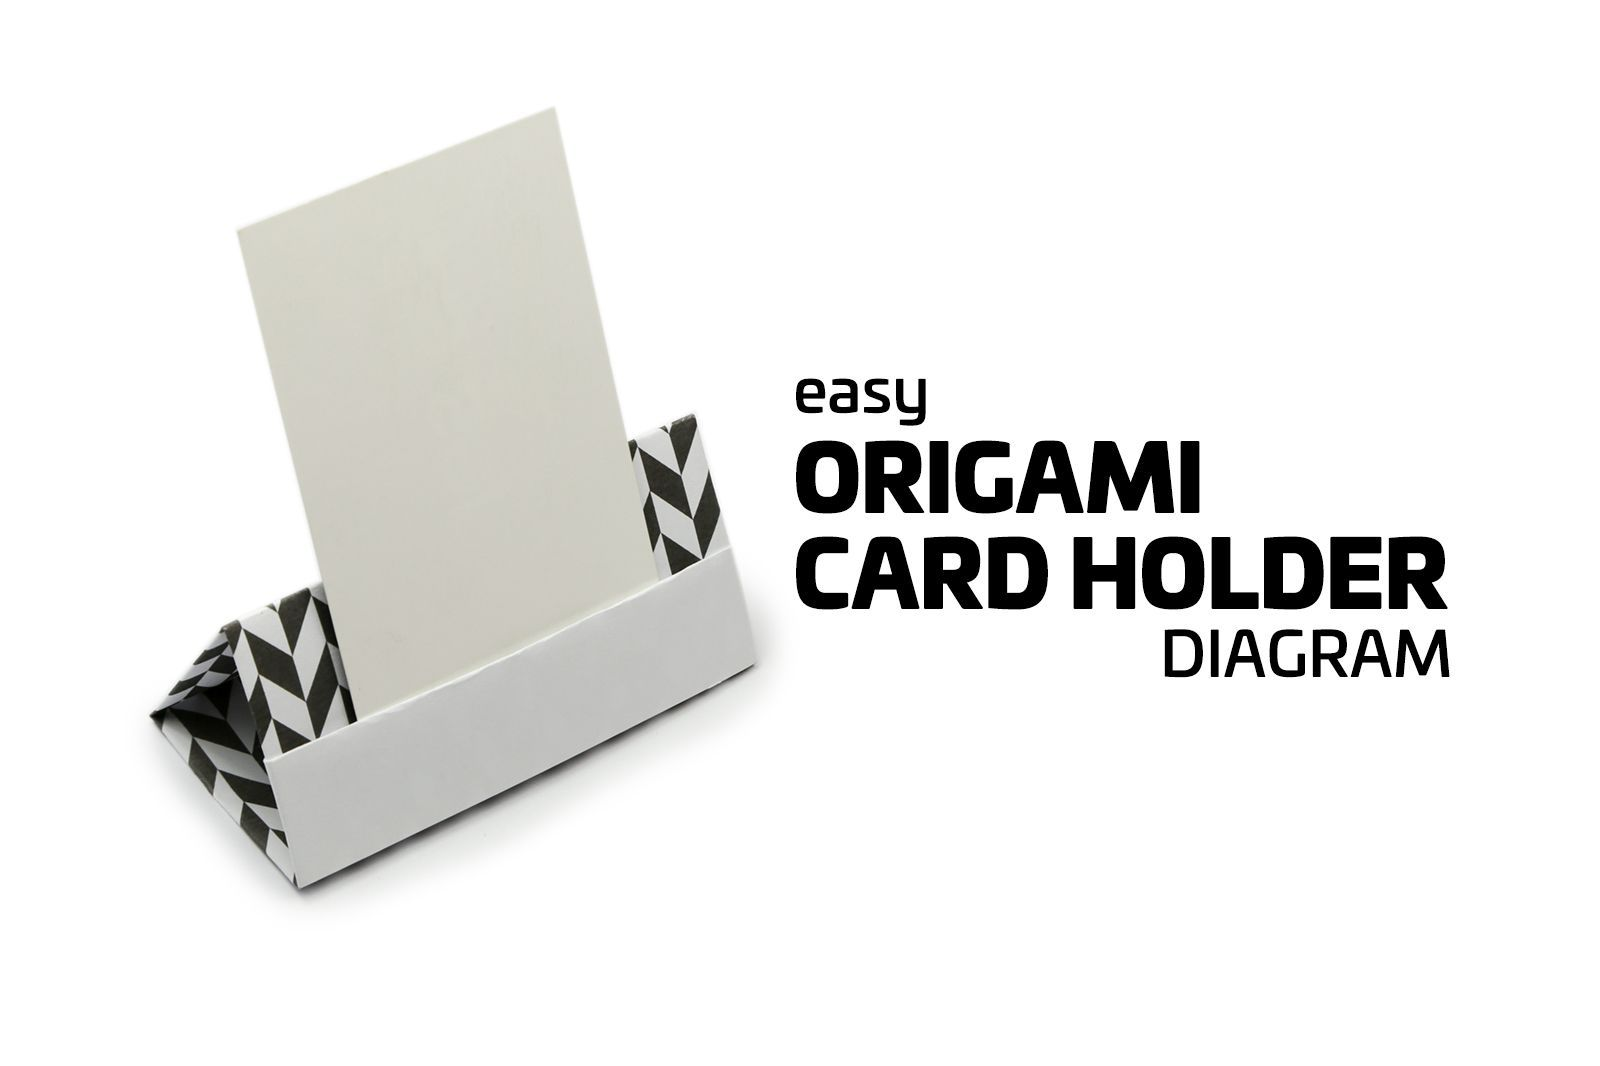 Easy Origami Card Stand Tutorial! | Origami cards, Menu holders and ...